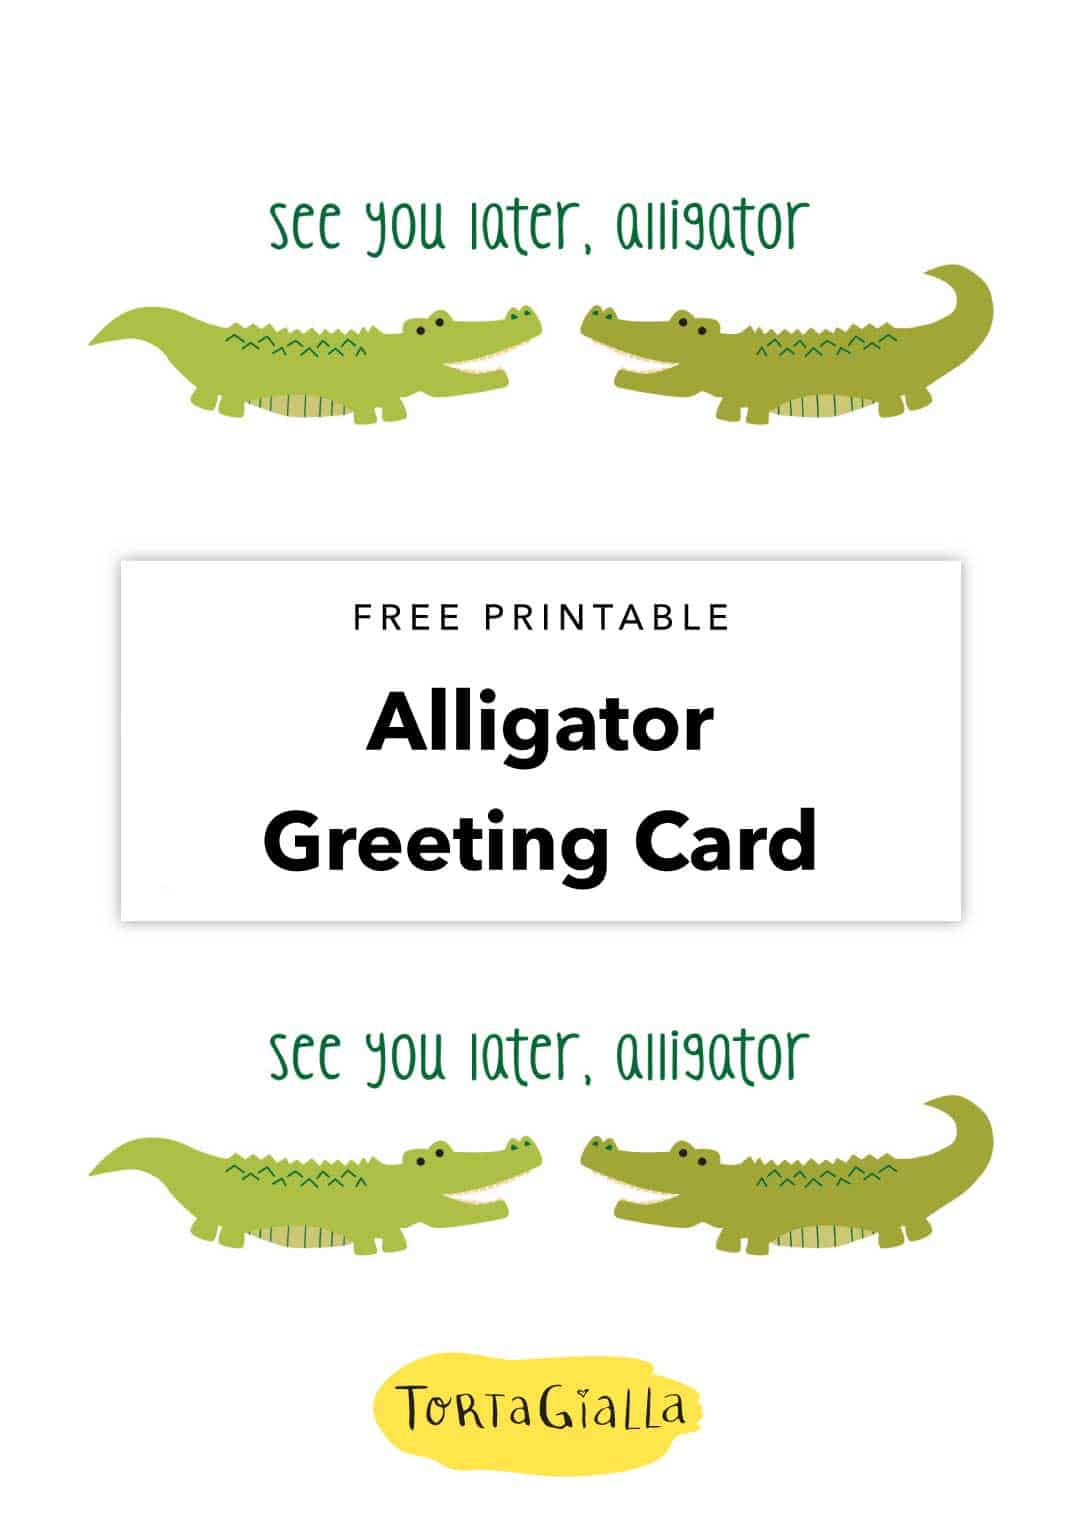 Will you see someone soon and want to drop them a line the old fashioned way? How about using this see you later alligator card and sending real mail!